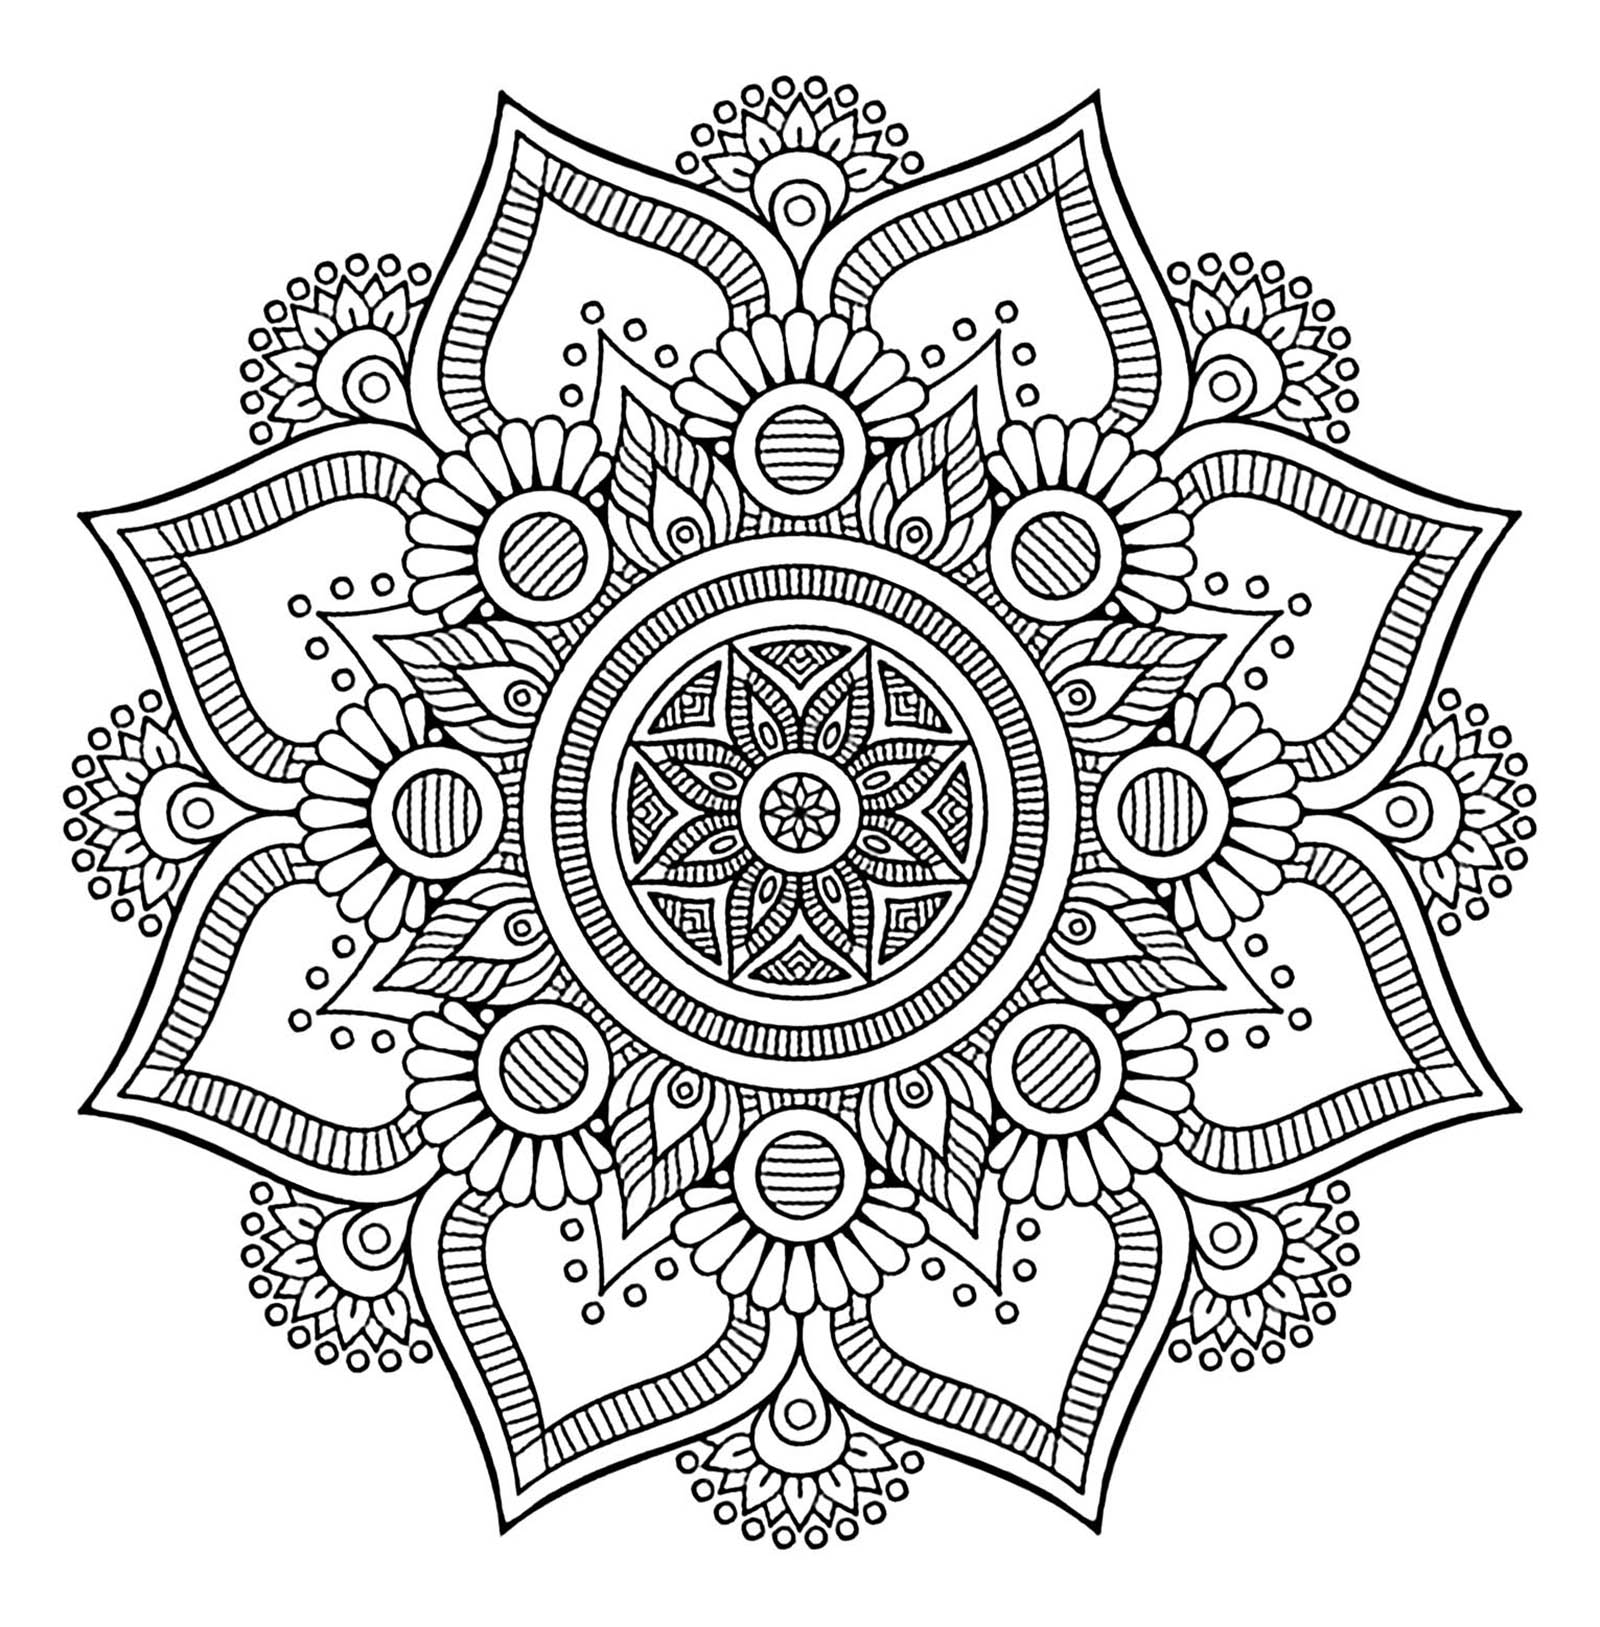 mandala colouring pages for kids free printable mandalas for kids best coloring pages for colouring mandala for kids pages